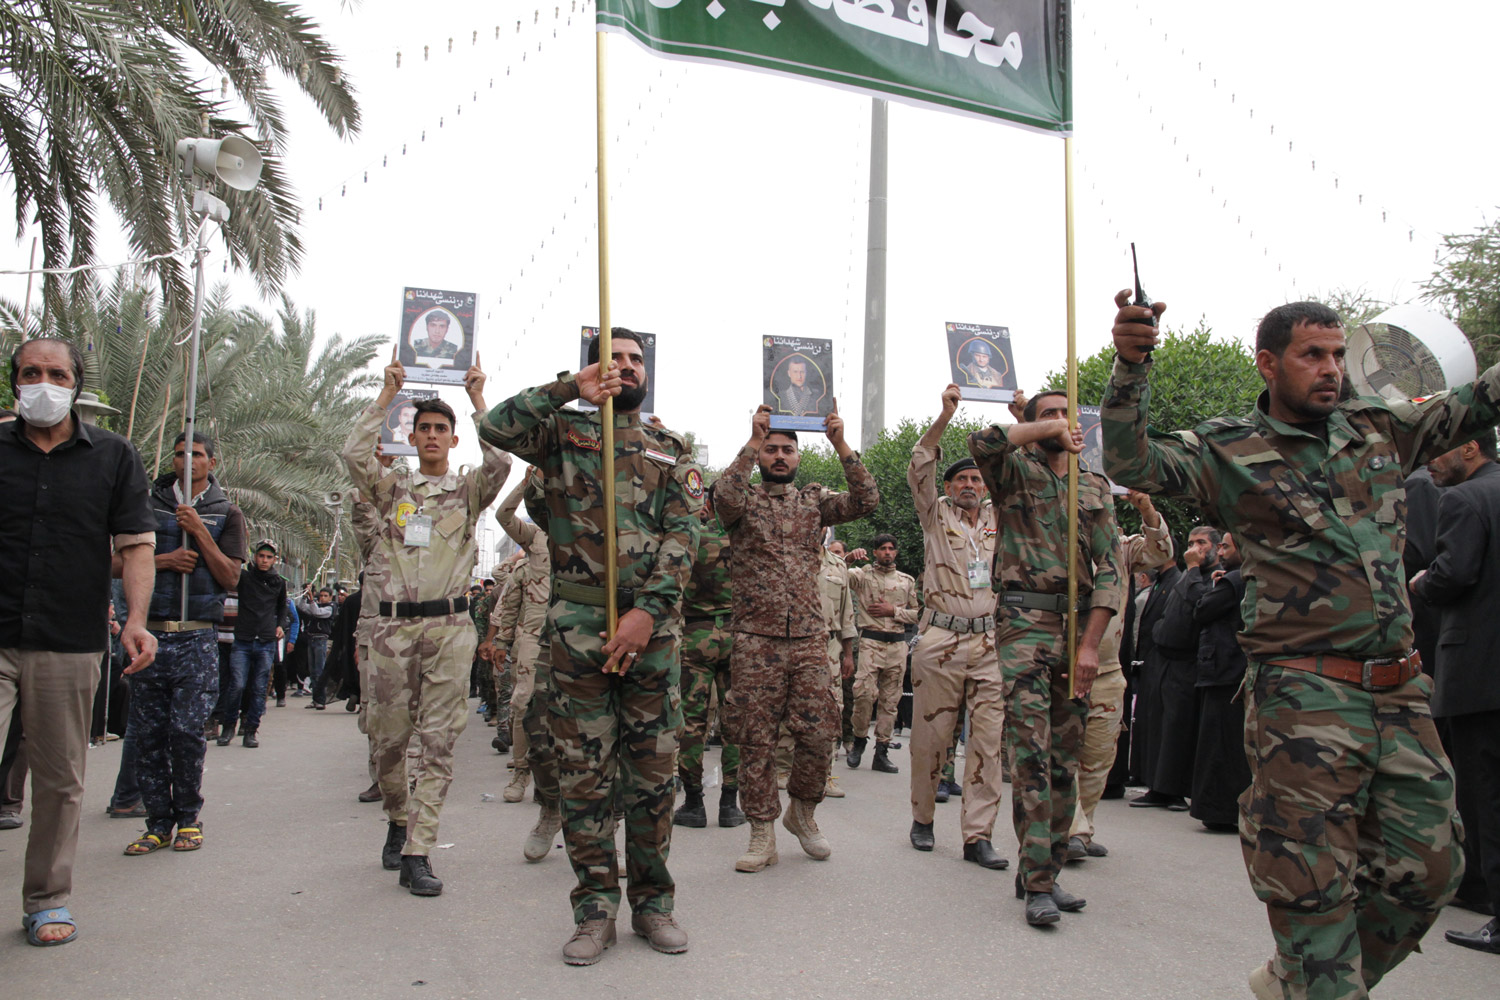 Members of the PMF or Hashd al-Shaabi depicting their martyrs during a march in Iraq, November 2016.